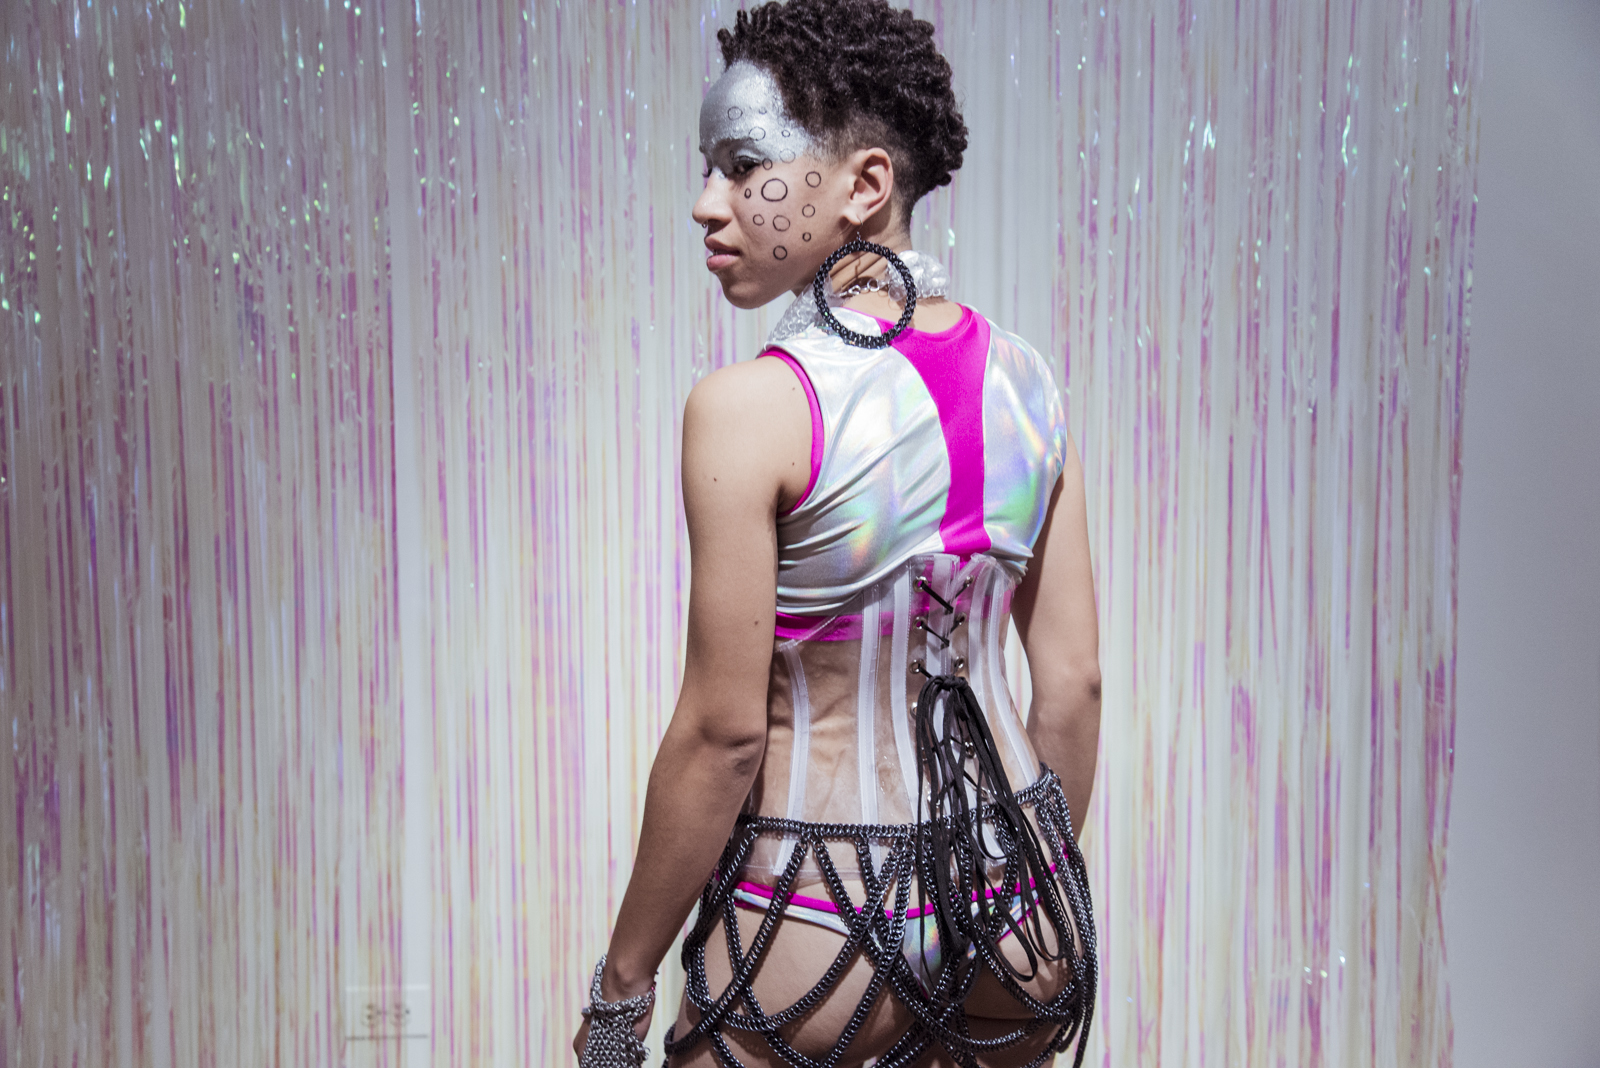 Gallery 400-Chances Dances - PLATFORMS -WERQ - Embodying Queer Spirit-5048-WEB.jpg